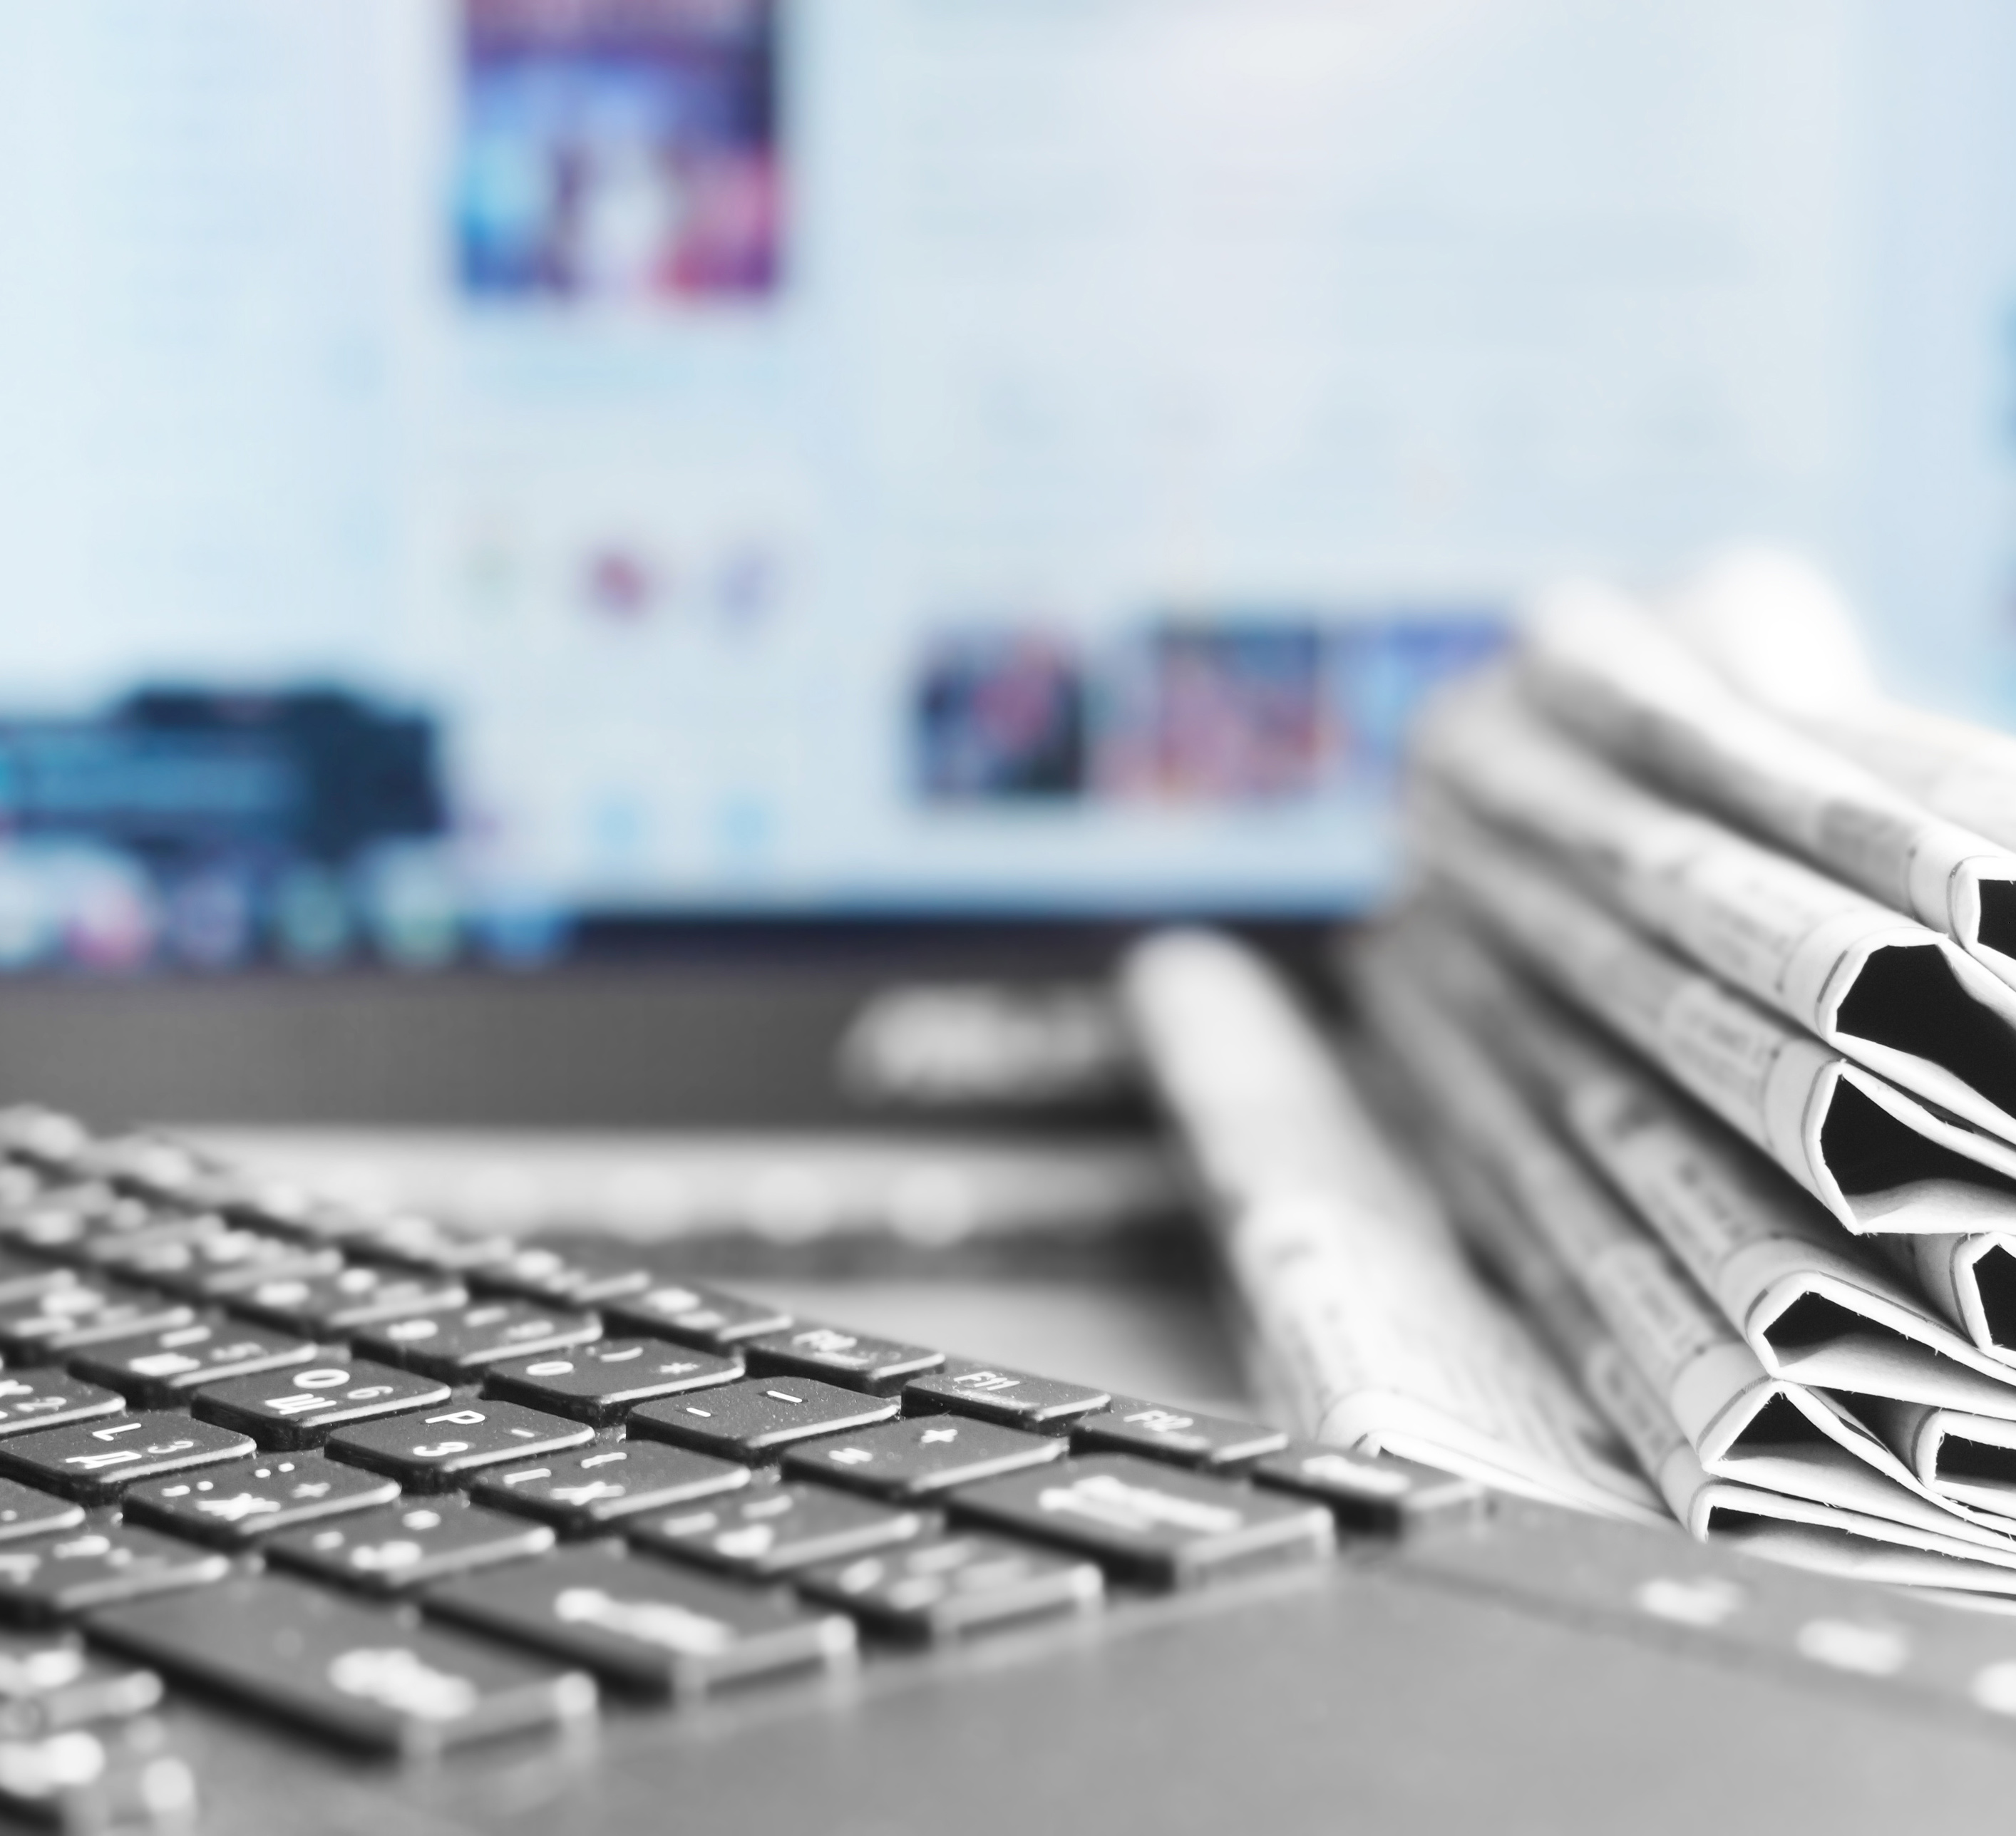 56% of respondents demonstrated a medium and low level of trust in the printed and online press reports during the Corona period